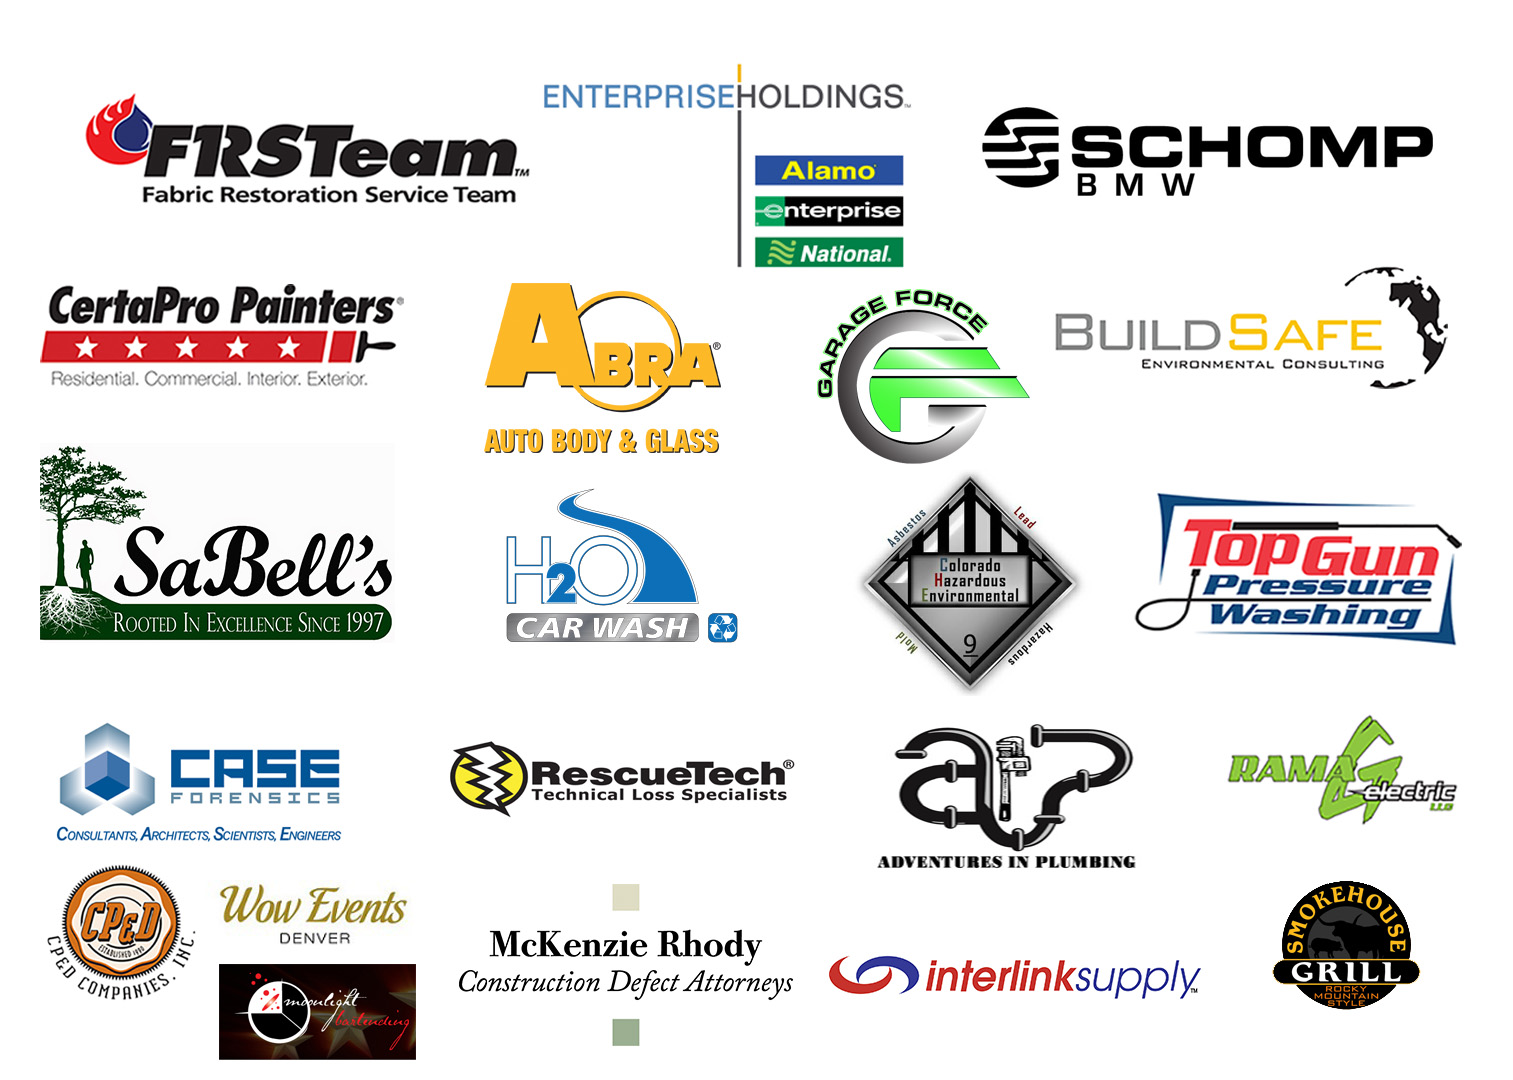 6th Annual Formula 1 Challenge Event Sponsors!